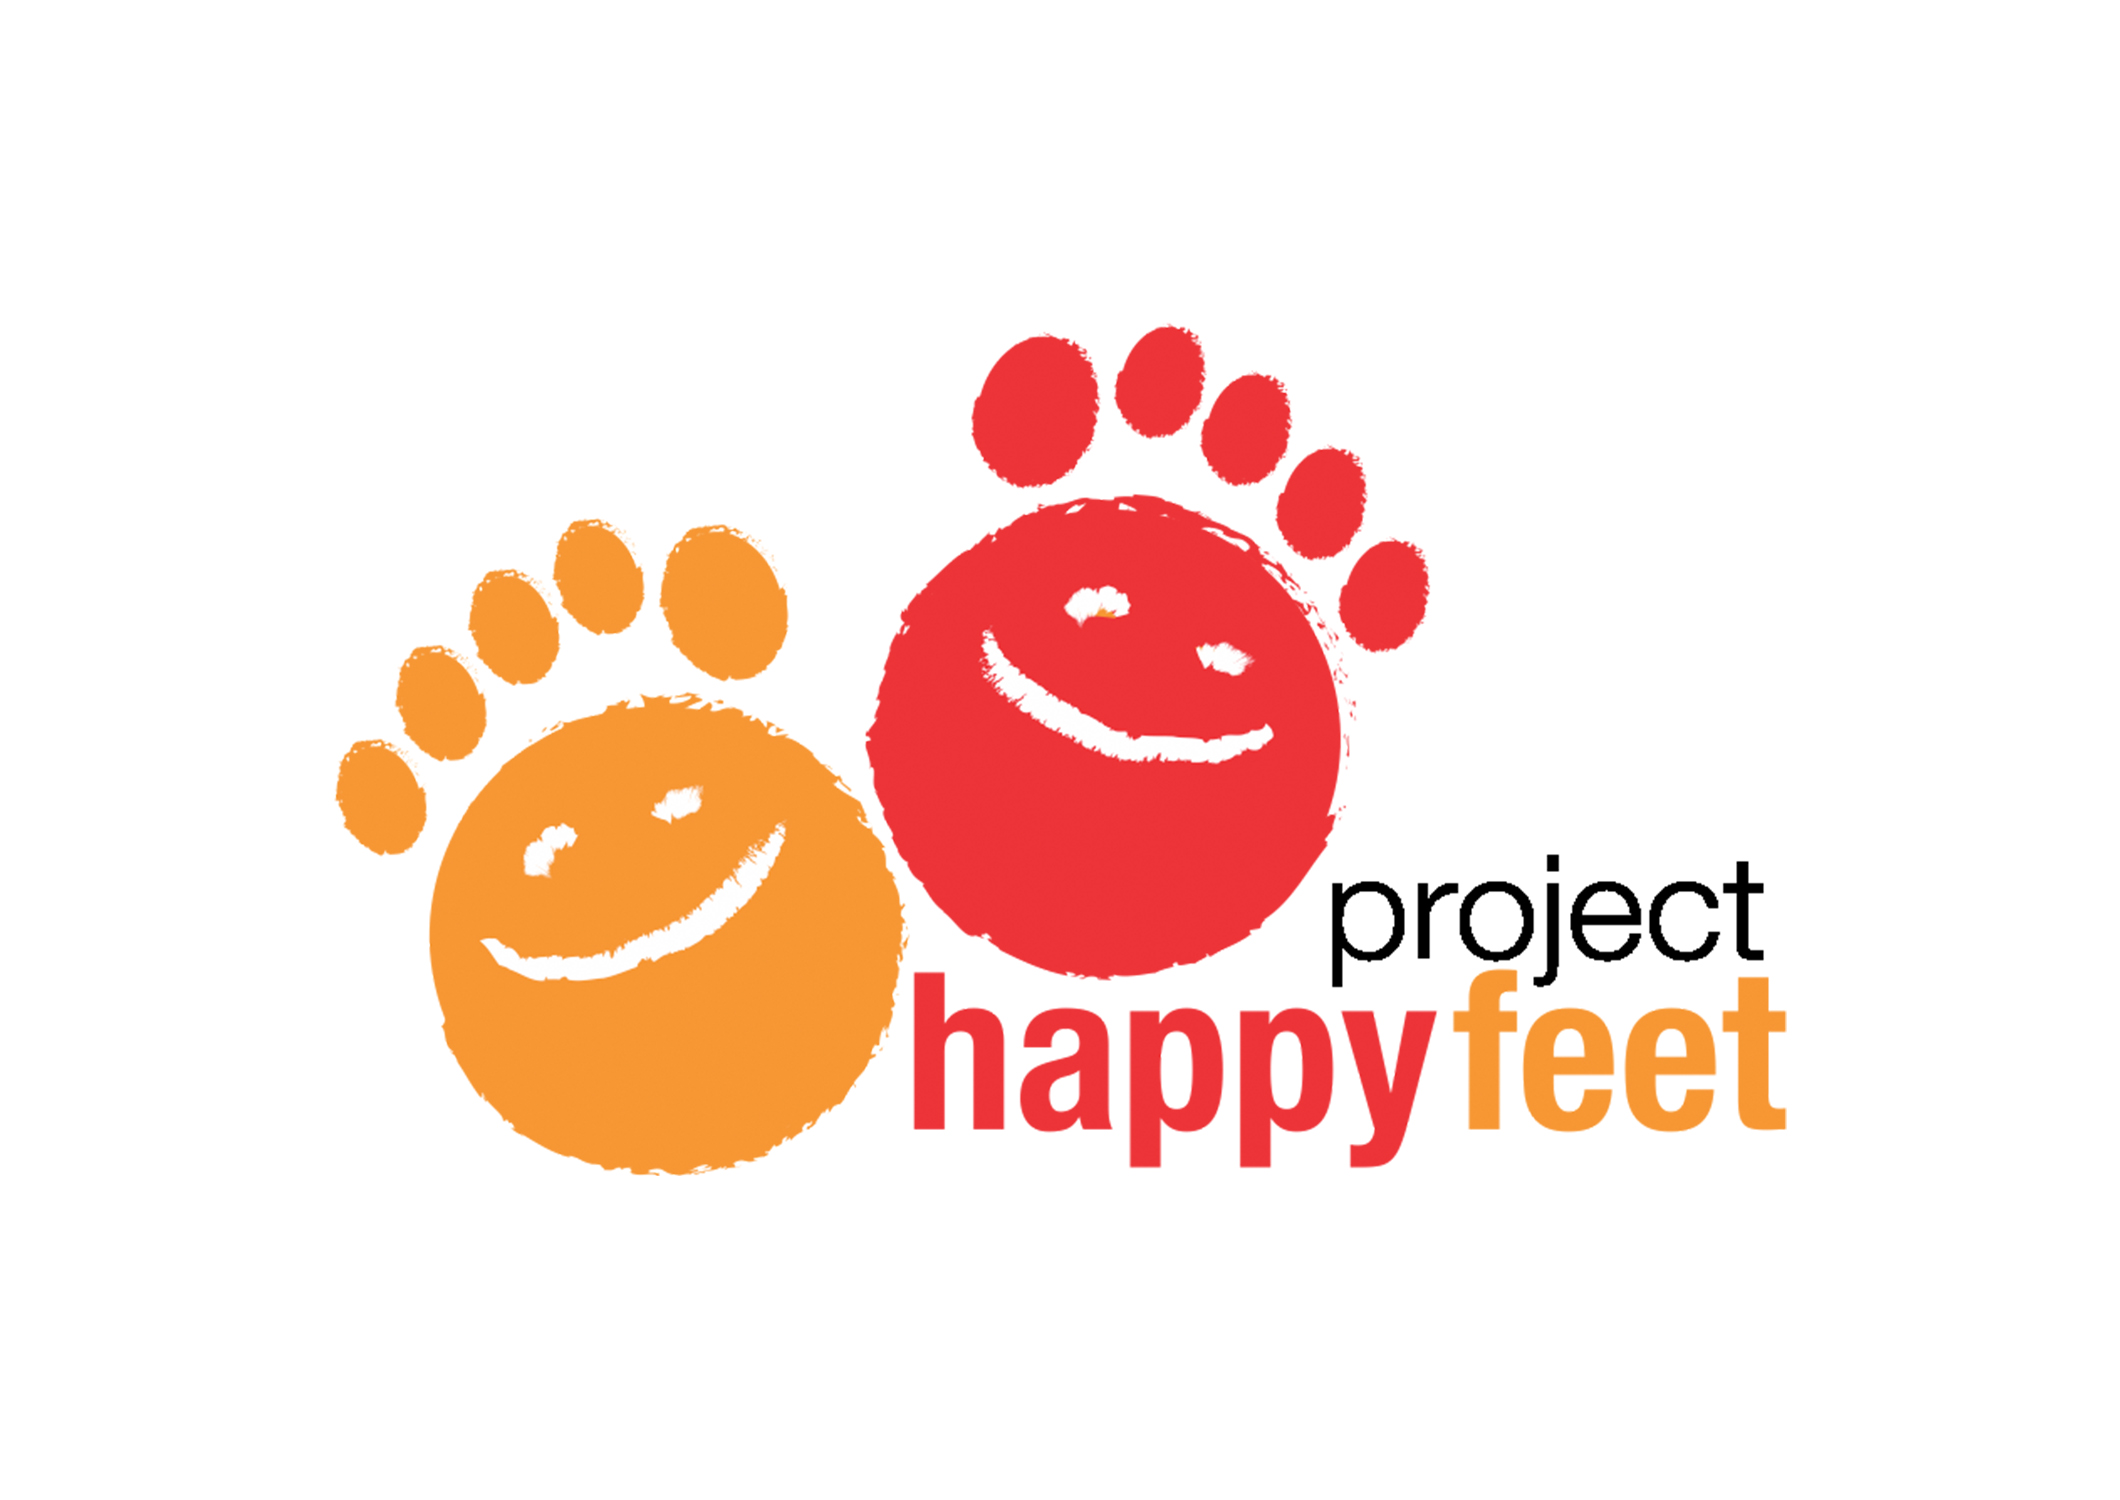 Project Happy Feet